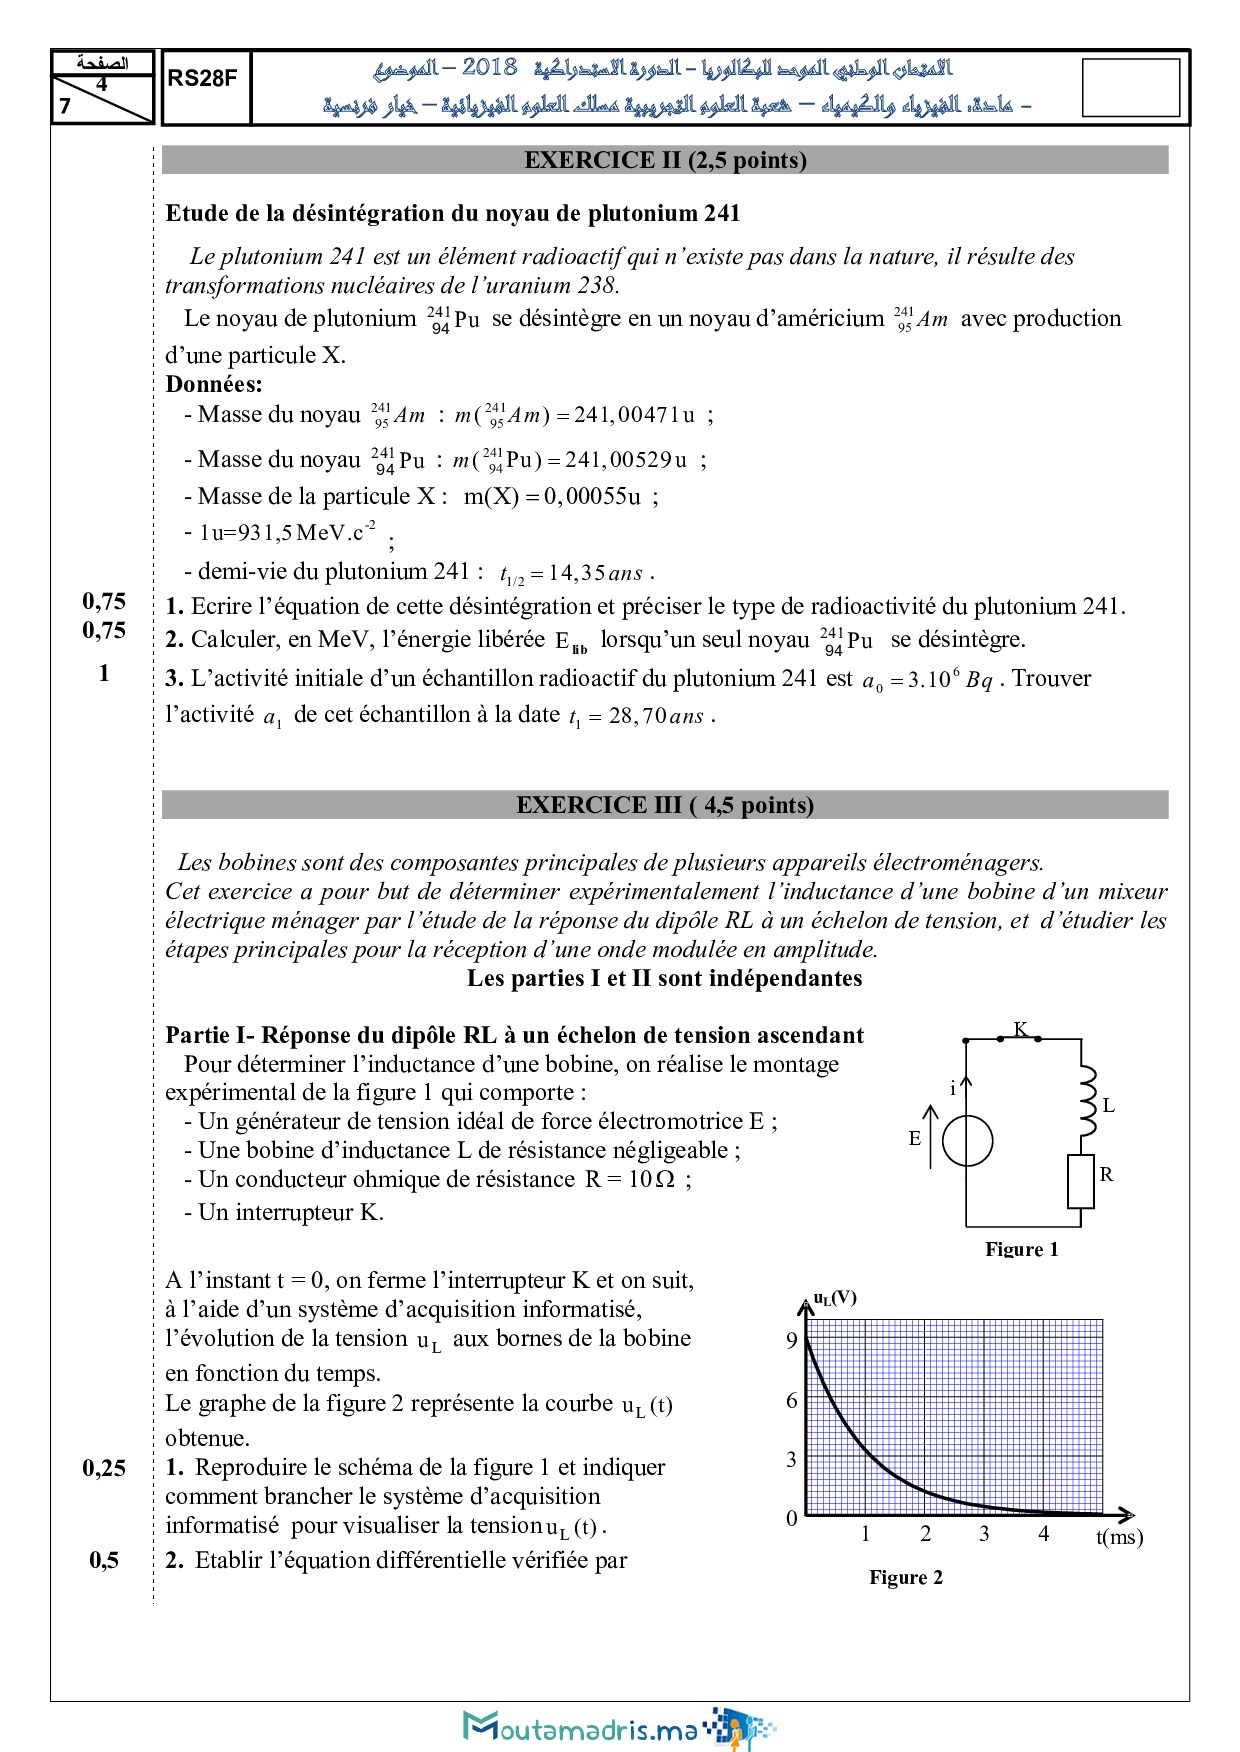 Examen National Physique-Chimie SPC 2018 Rattrapage - Sujet4.jpg